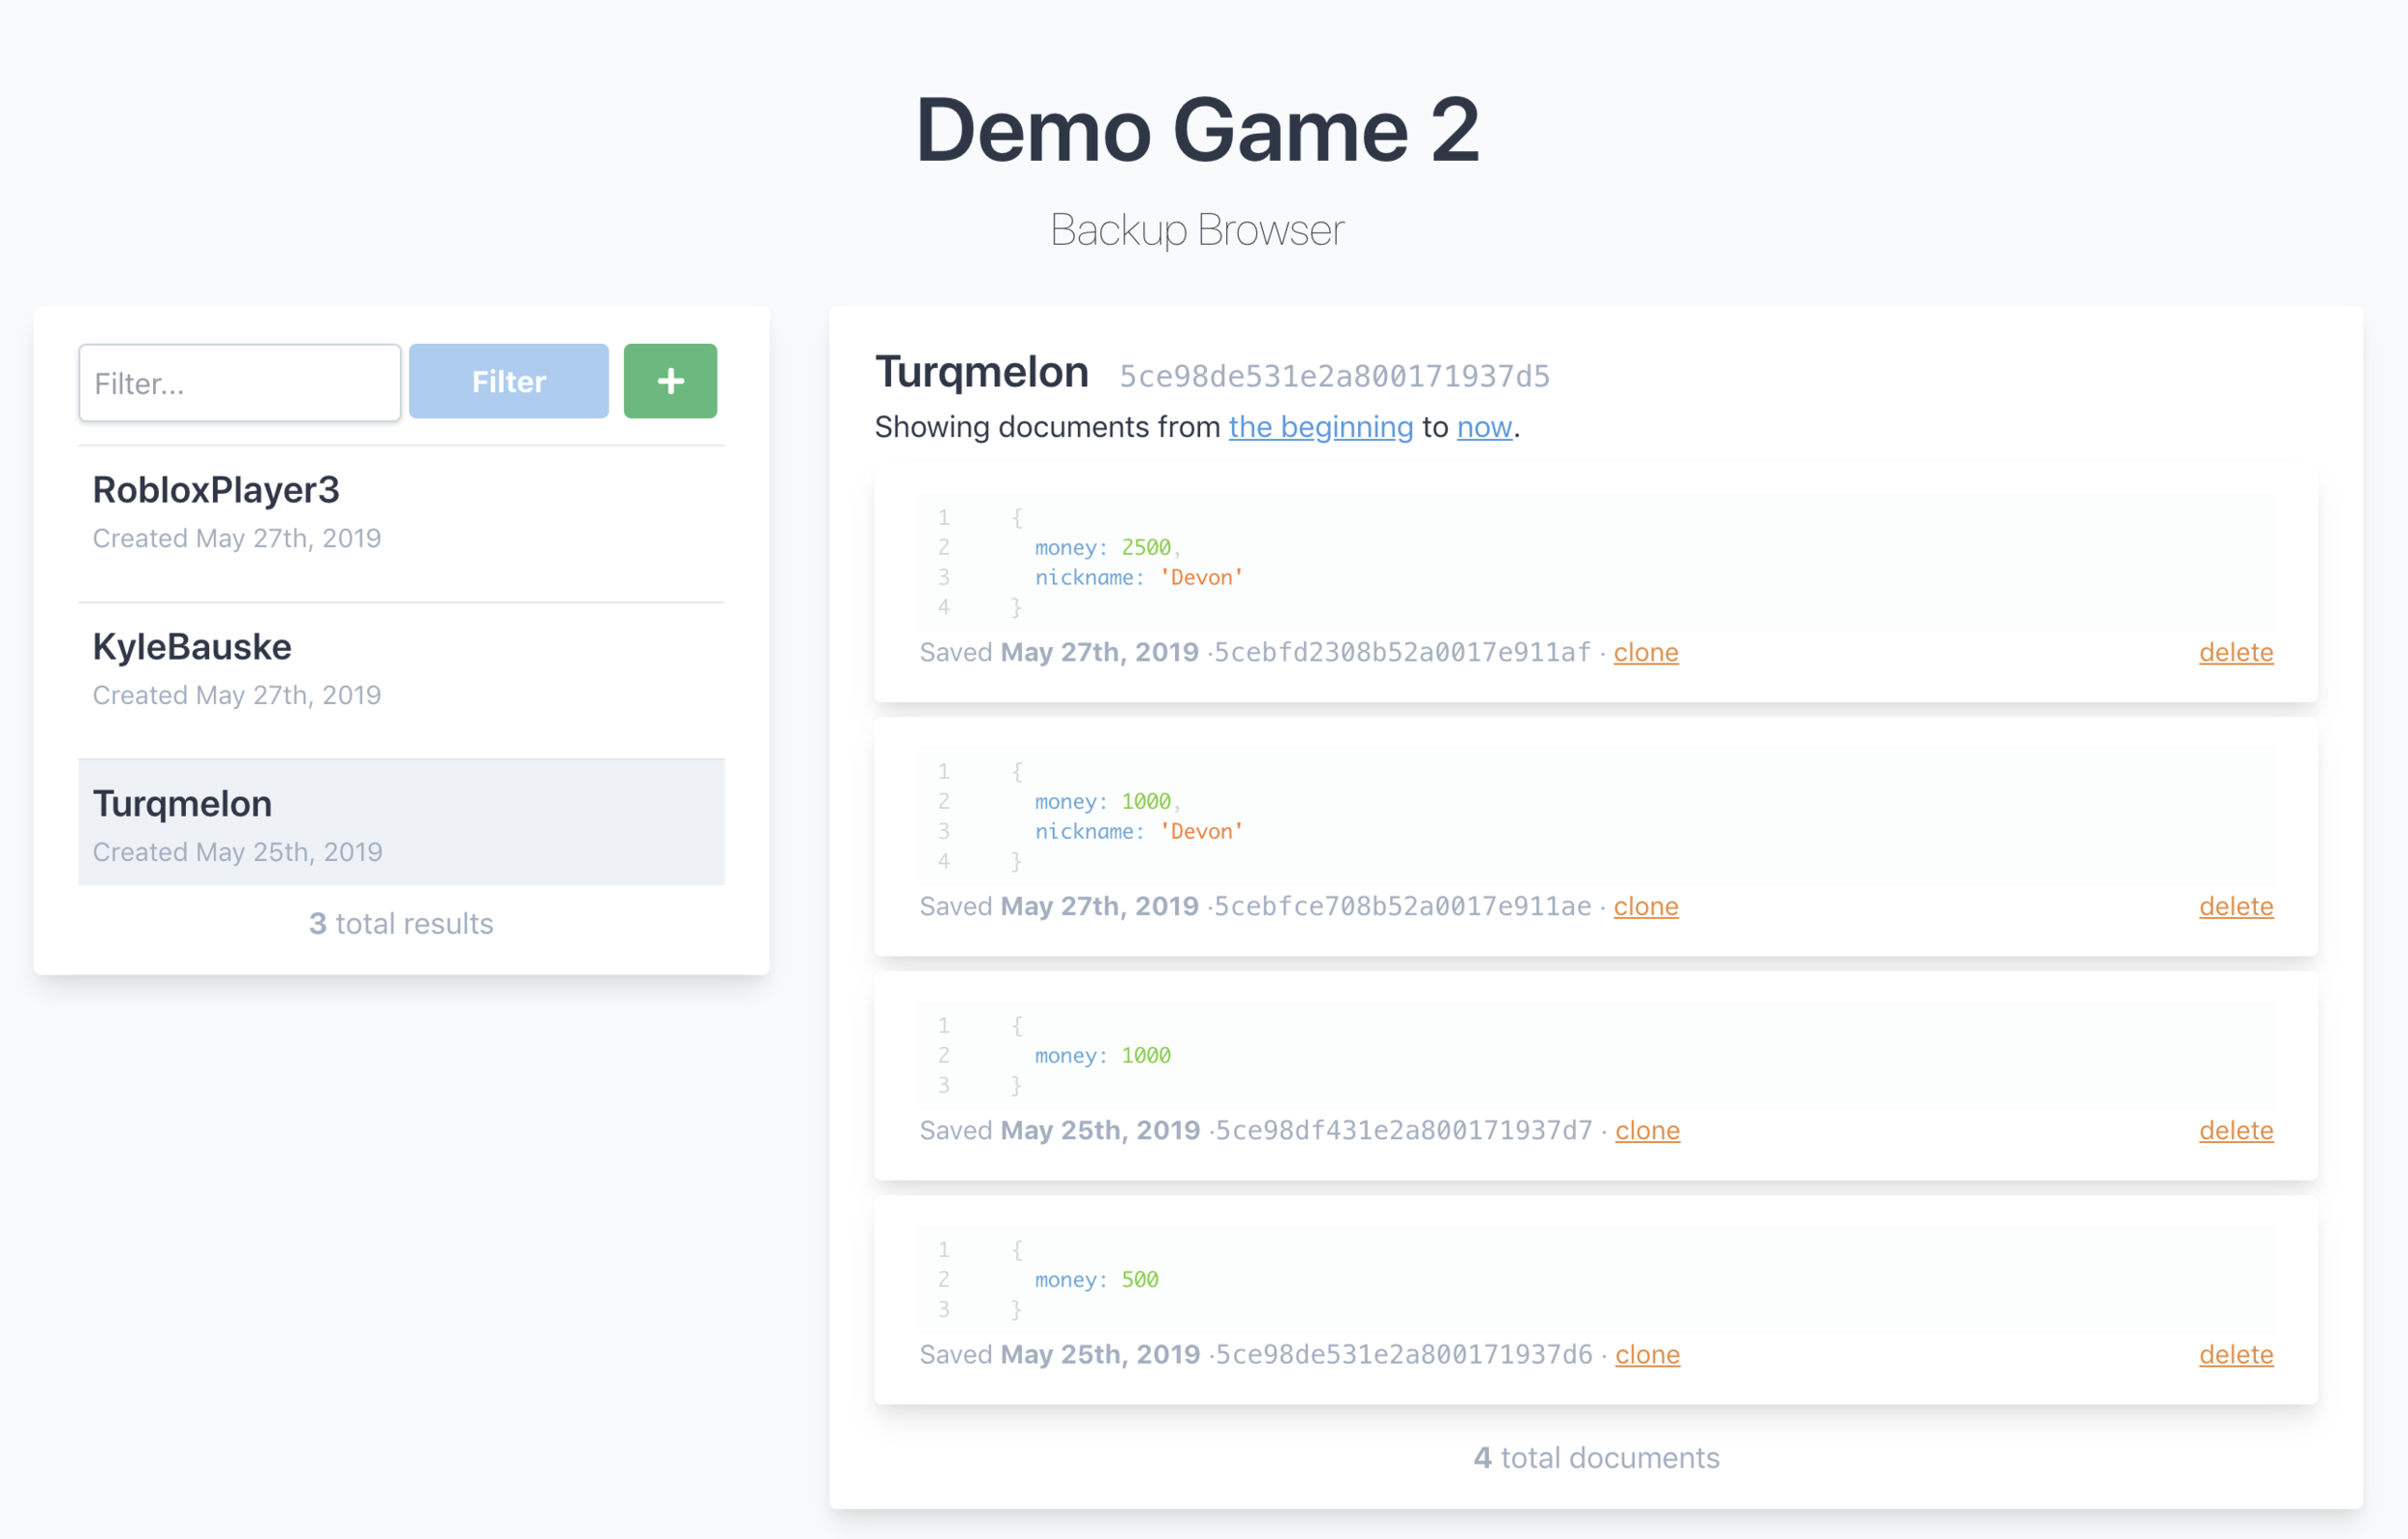 Pre-production UI. Subject to change for final release.